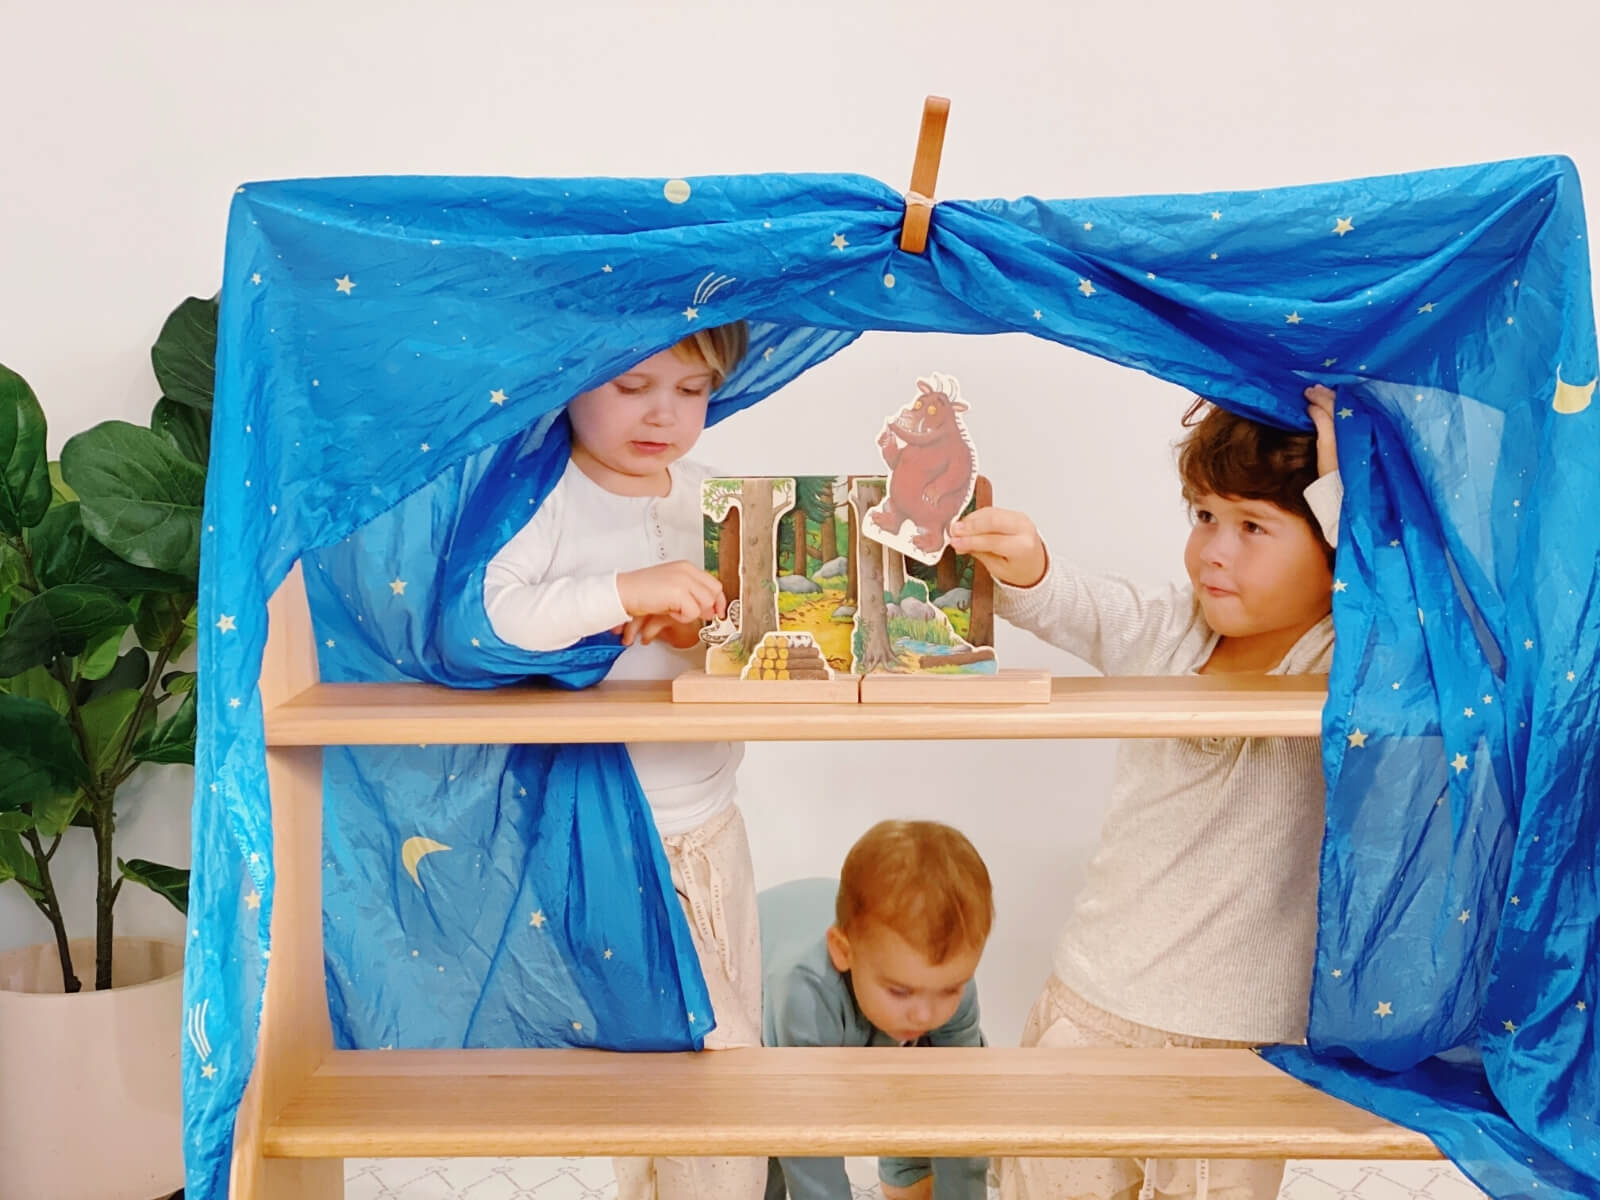 Setting up your bookish play with the Gruffalo Wooden Theatre